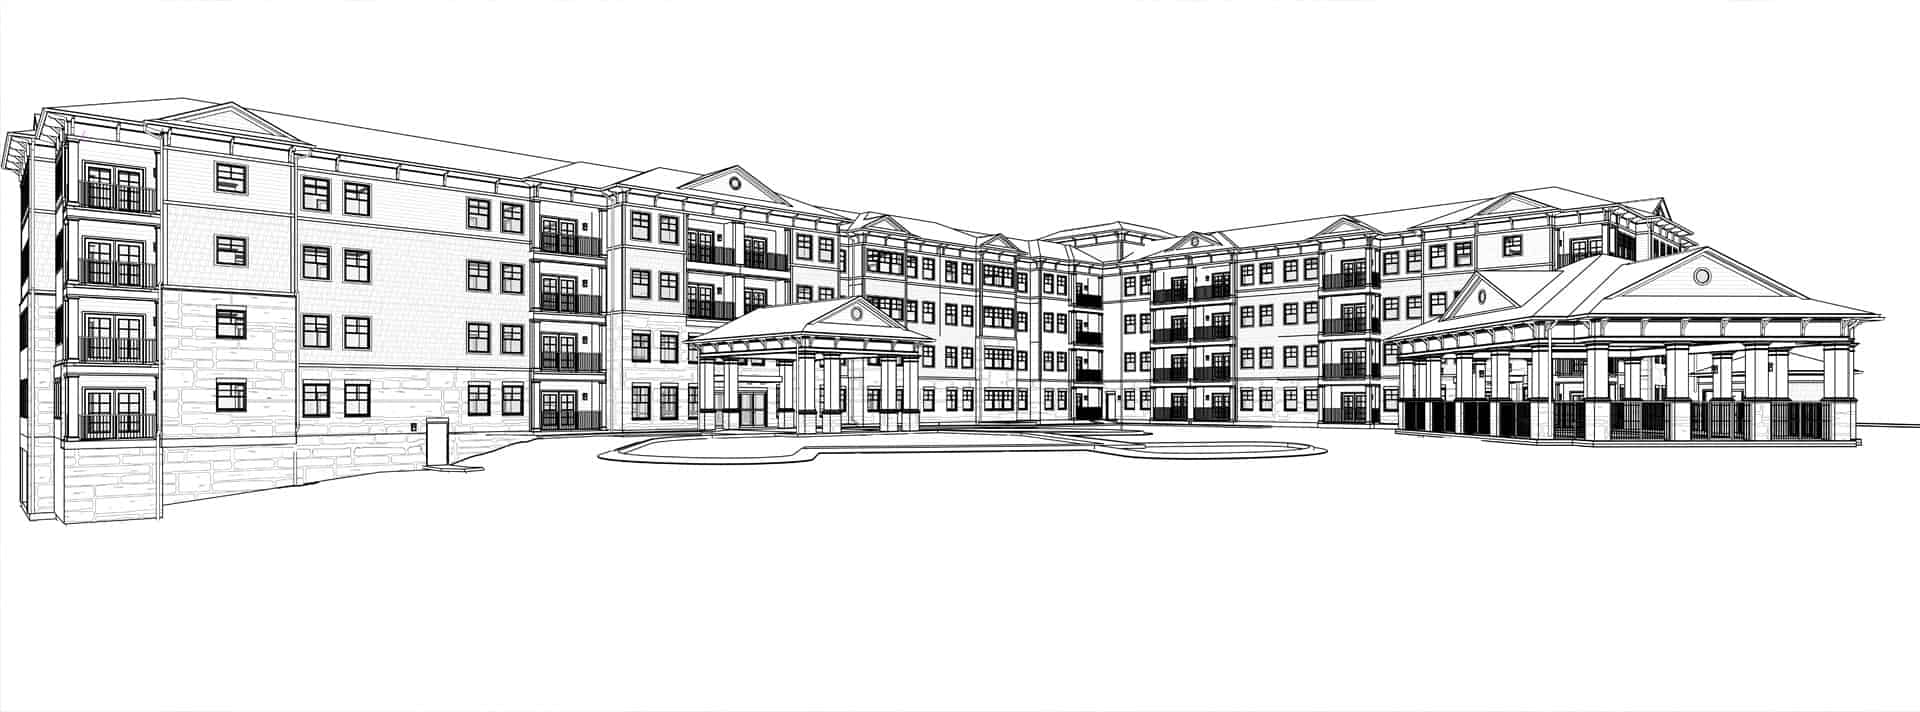 The Villas at Canterfield of Kennesaw - Rendering